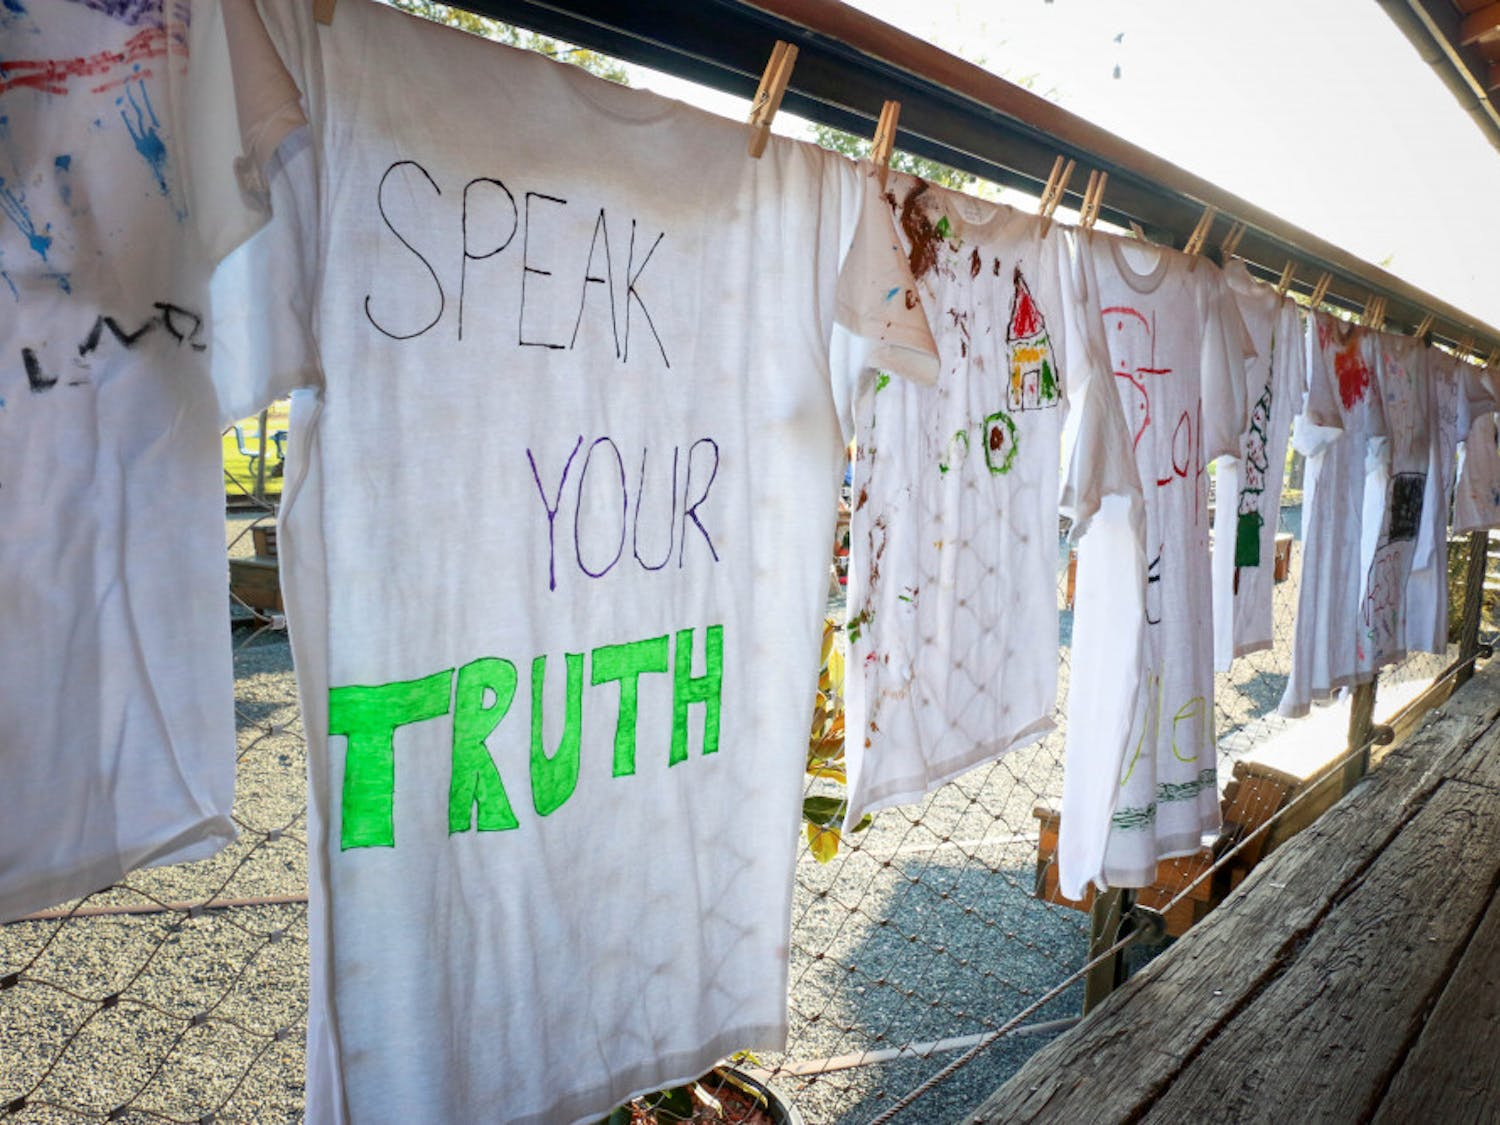 Forty-nine shirts lined the walkway at Depot Park on Oct. 4, 2018, during the Domestic Violence Community Vigil and Clothesline Project Exhibit. The Clothesline Project began in 1990 and was created to honor survivors of domestic violence and educate others about the reality of abuse. The shirts were decorated by women and children who survived domestic violence.